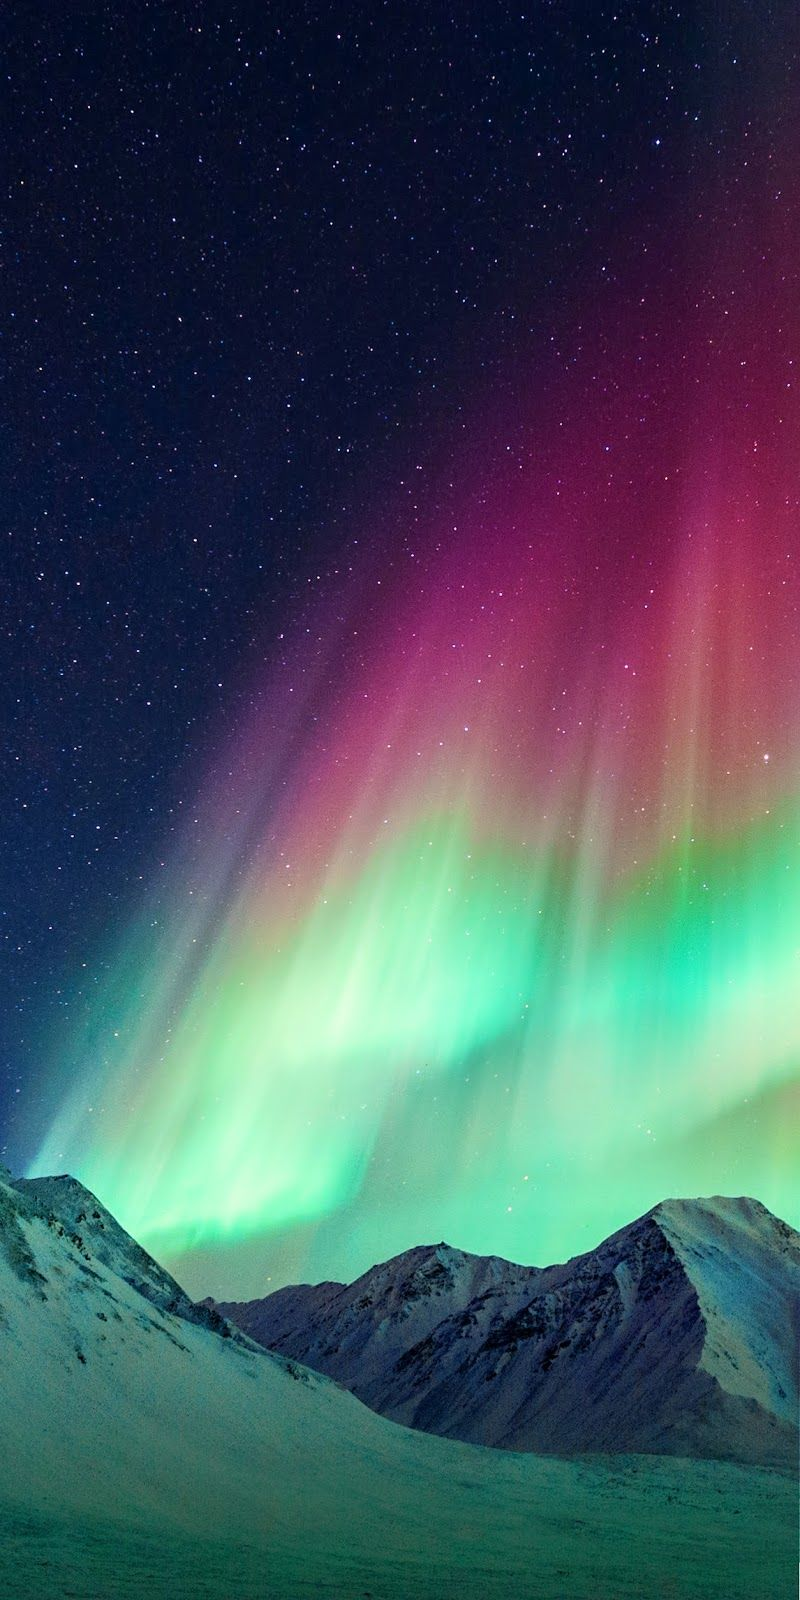 Free Download Lg V30 Wallpapers In 2019 Northern Lights